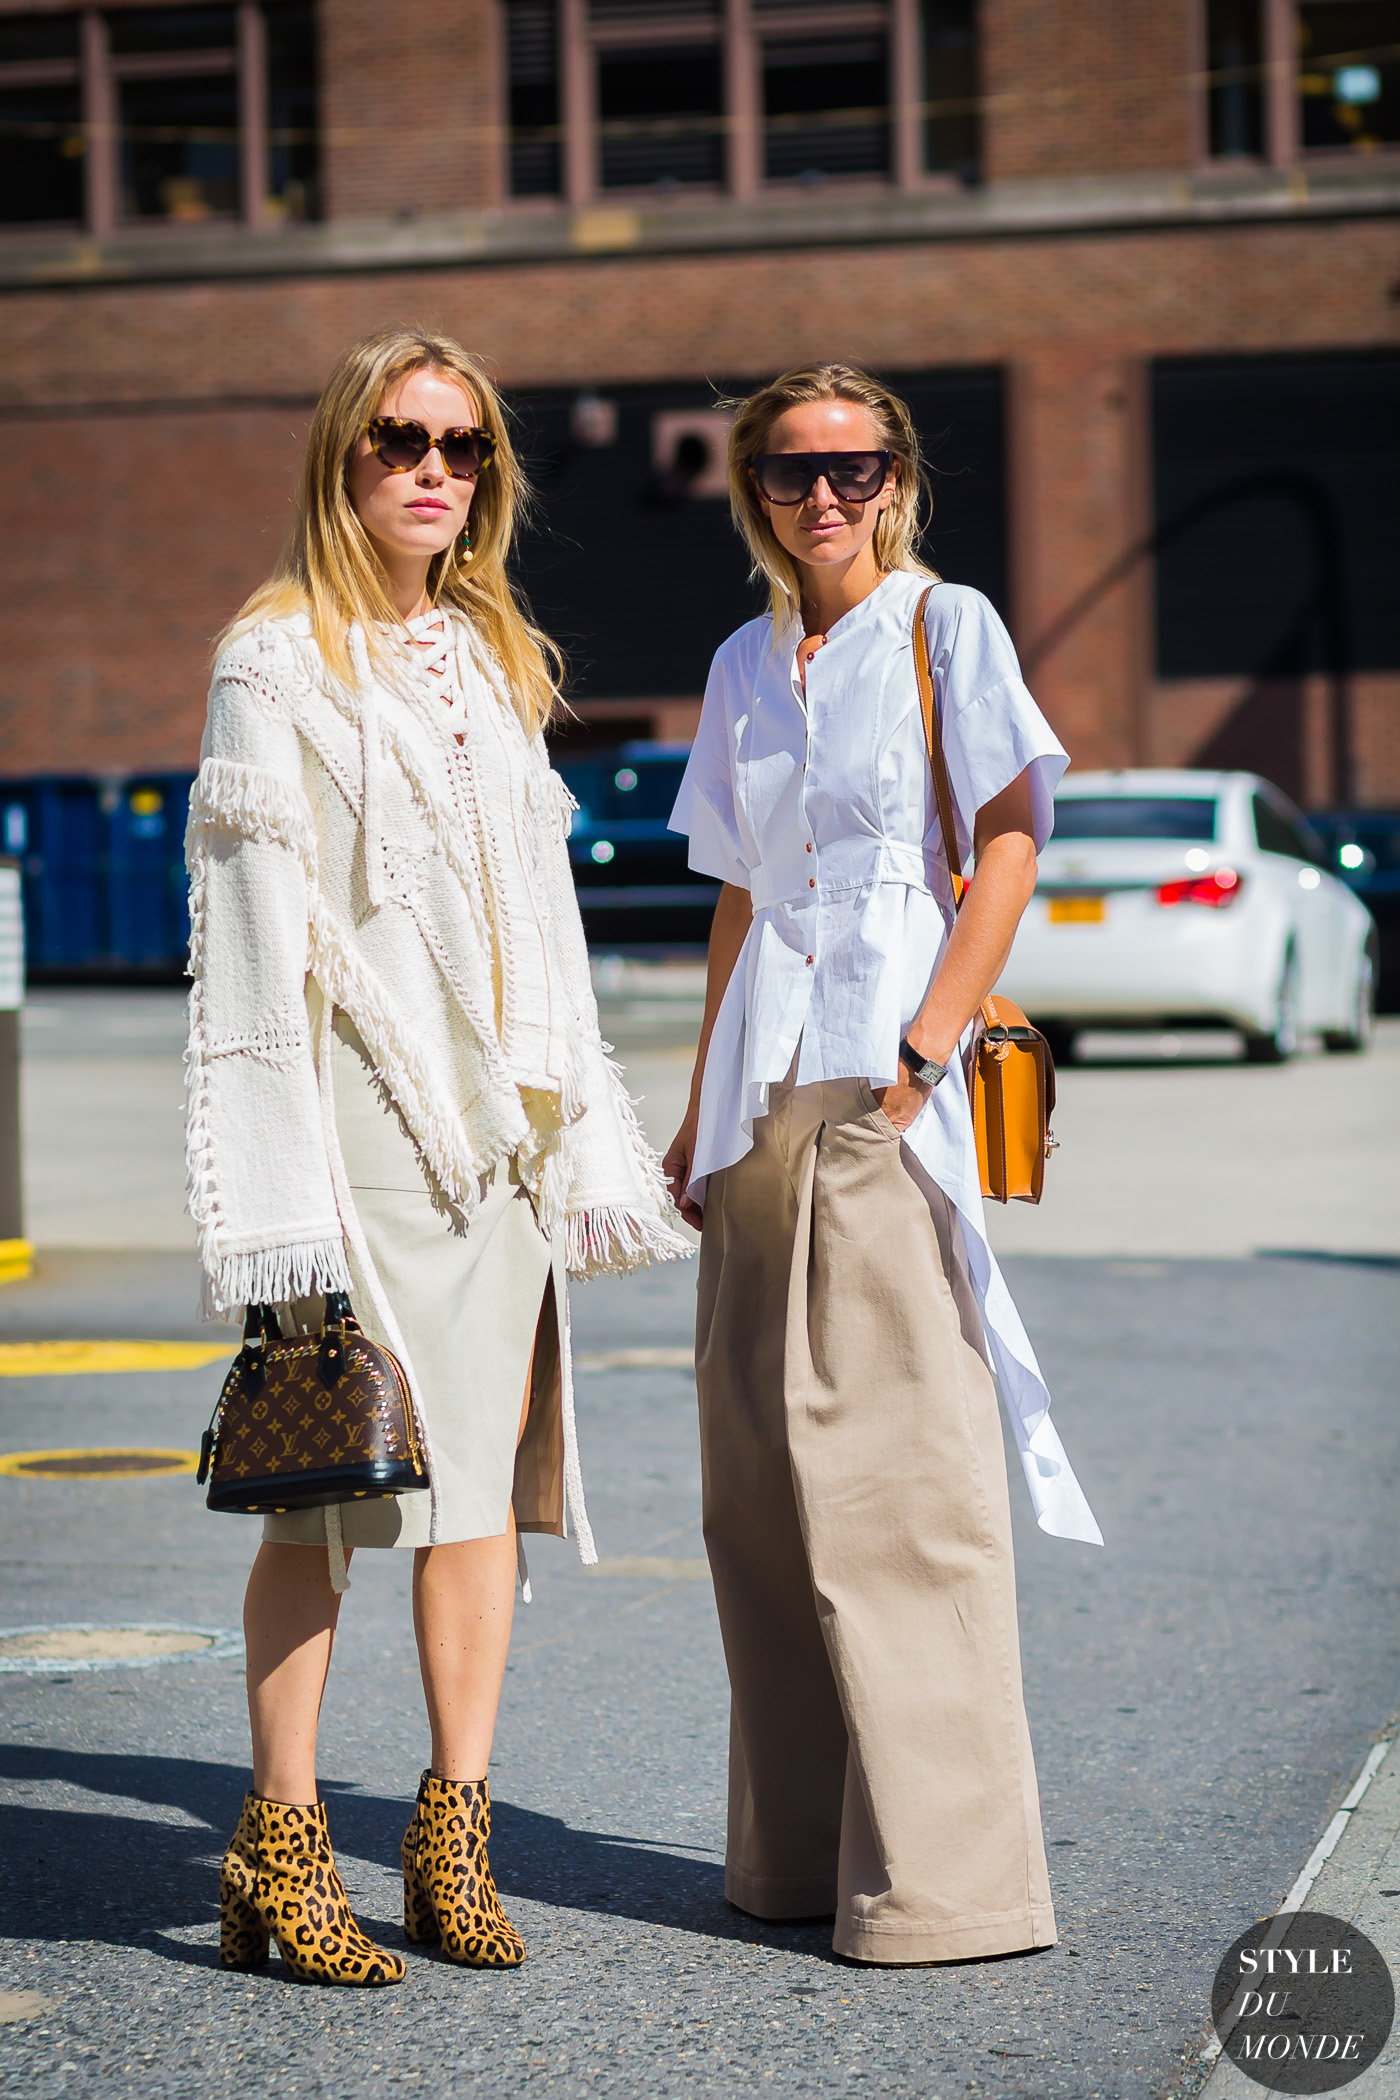 Annabel-Rosendahl-and-Celine-Aagaard-by-STYLEDUMONDE-Street-Style-Fashion-Photography0E2A7254-700x1050@2x